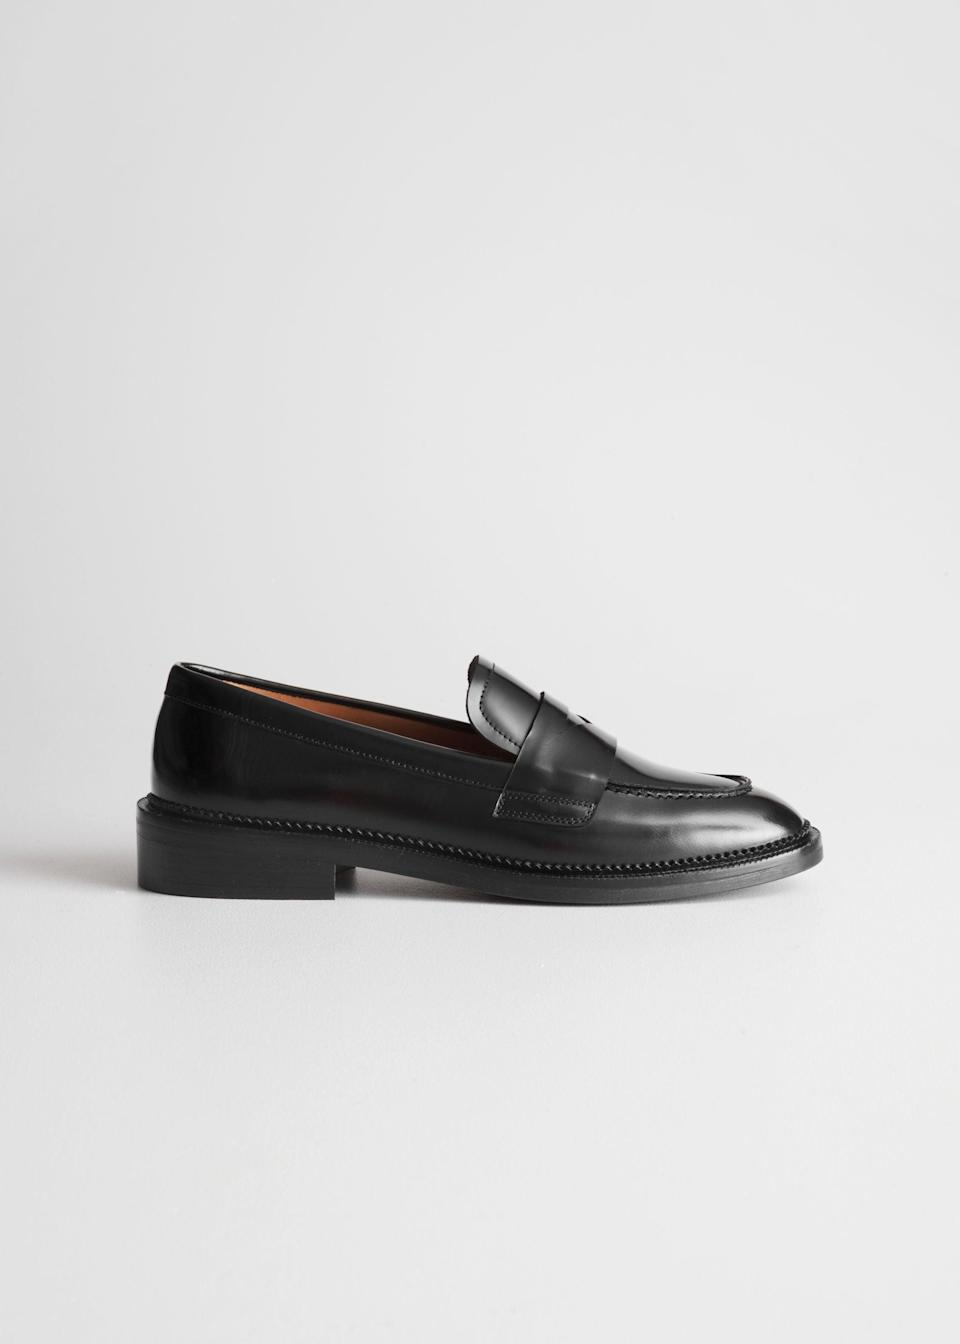 """To wear with your new socks. <br> <br> <strong>& Other Stories</strong> Round Toe Leather Loafer, $, available at <a href=""""https://go.skimresources.com/?id=30283X879131&url=https%3A%2F%2Fwww.stories.com%2Fen_usd%2Fshoes%2Fflats%2Floafers%2Fproduct.round-toe-loafer-black.0609781002.html"""" rel=""""nofollow noopener"""" target=""""_blank"""" data-ylk=""""slk:& Other Stories"""" class=""""link rapid-noclick-resp"""">& Other Stories</a>"""